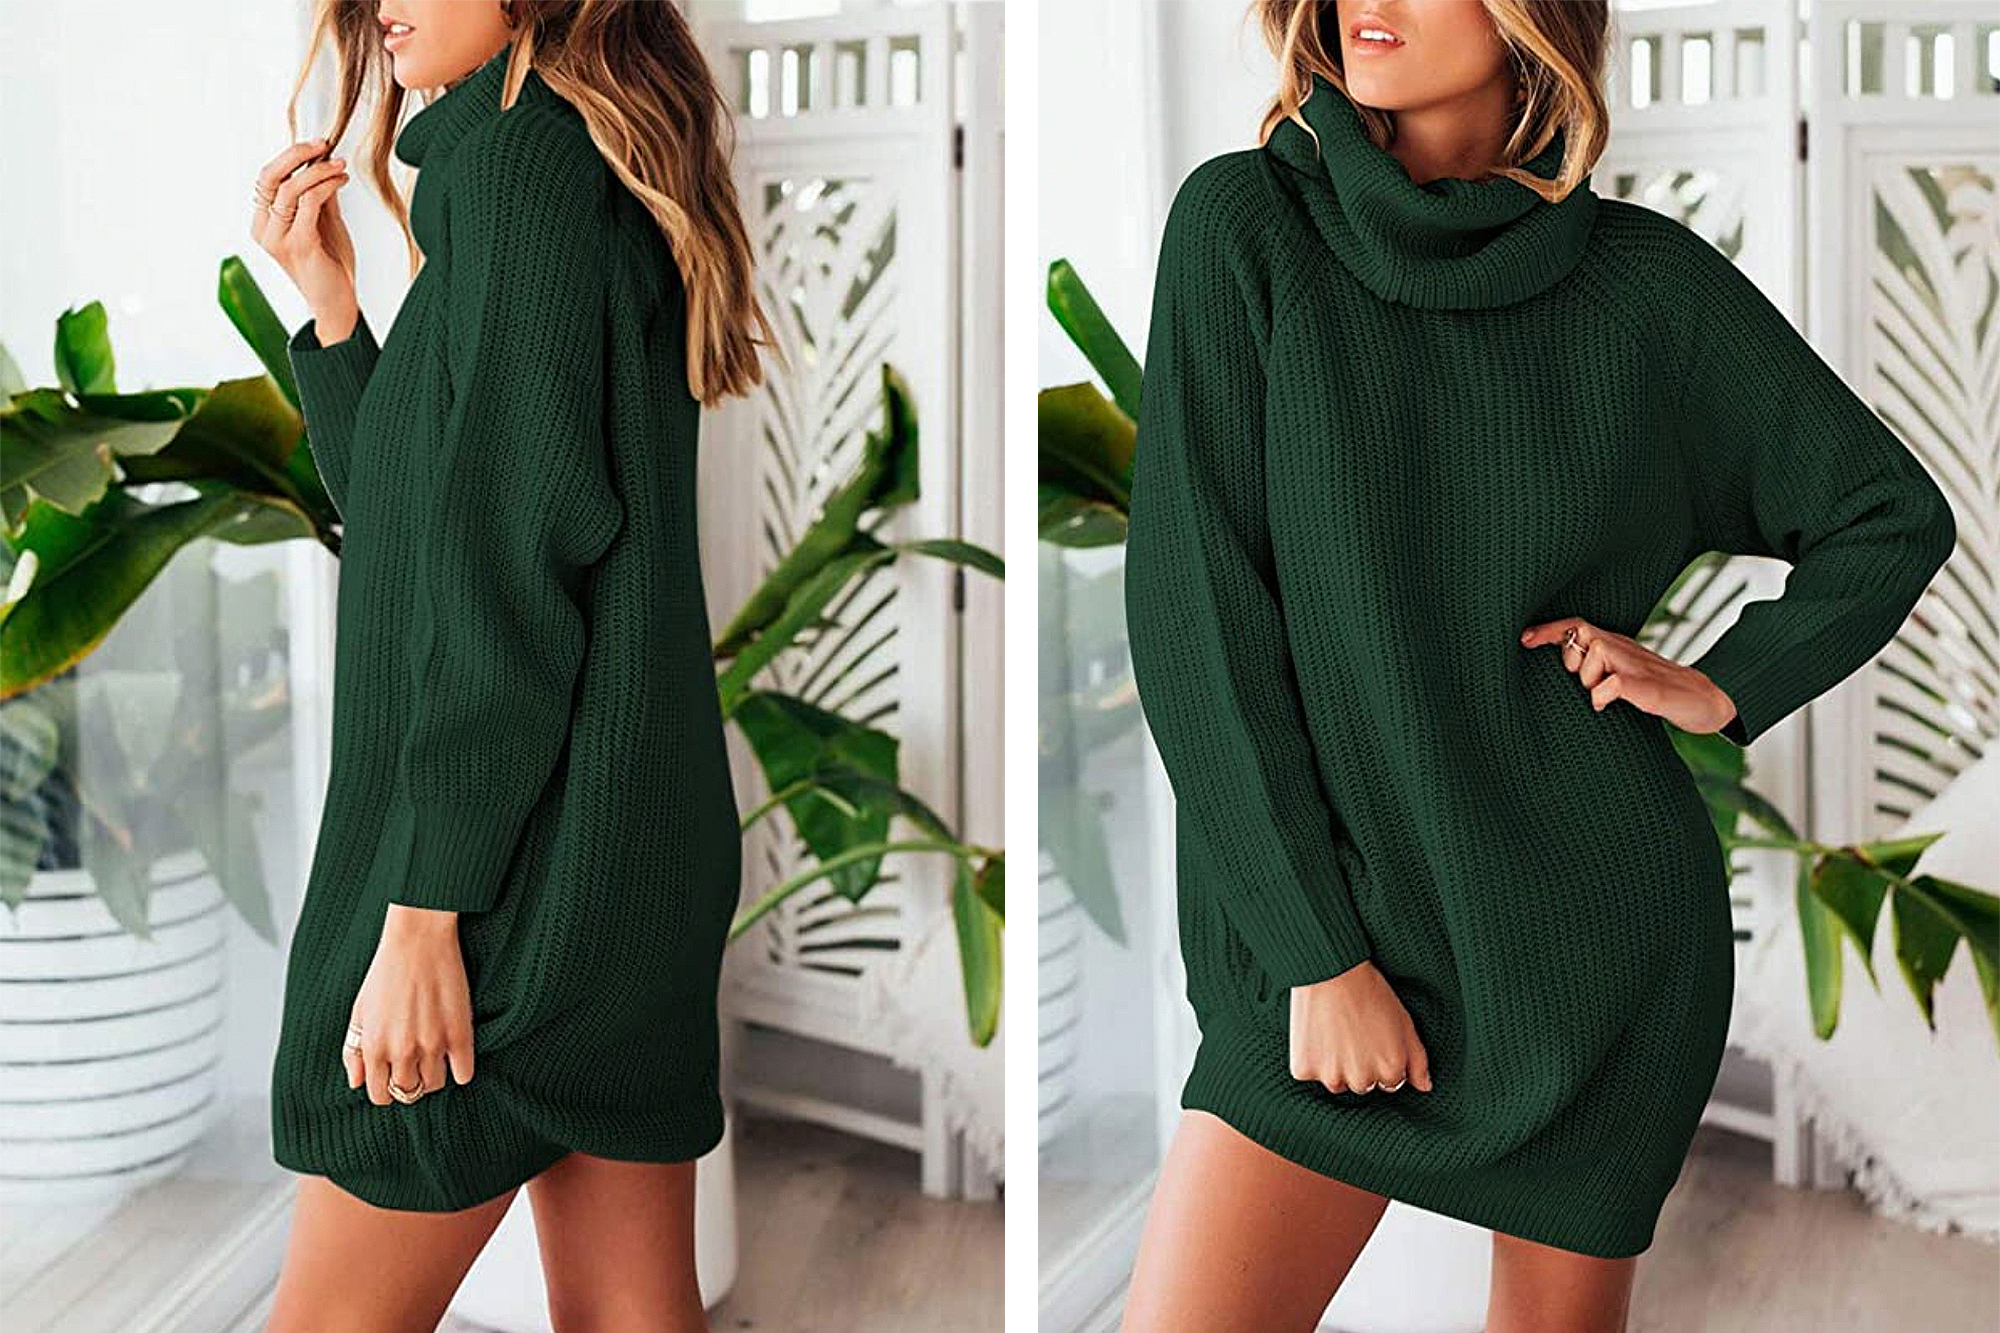 Sovoyontee Sweater Dress Is the Absolute Coziest Winter Ensemble